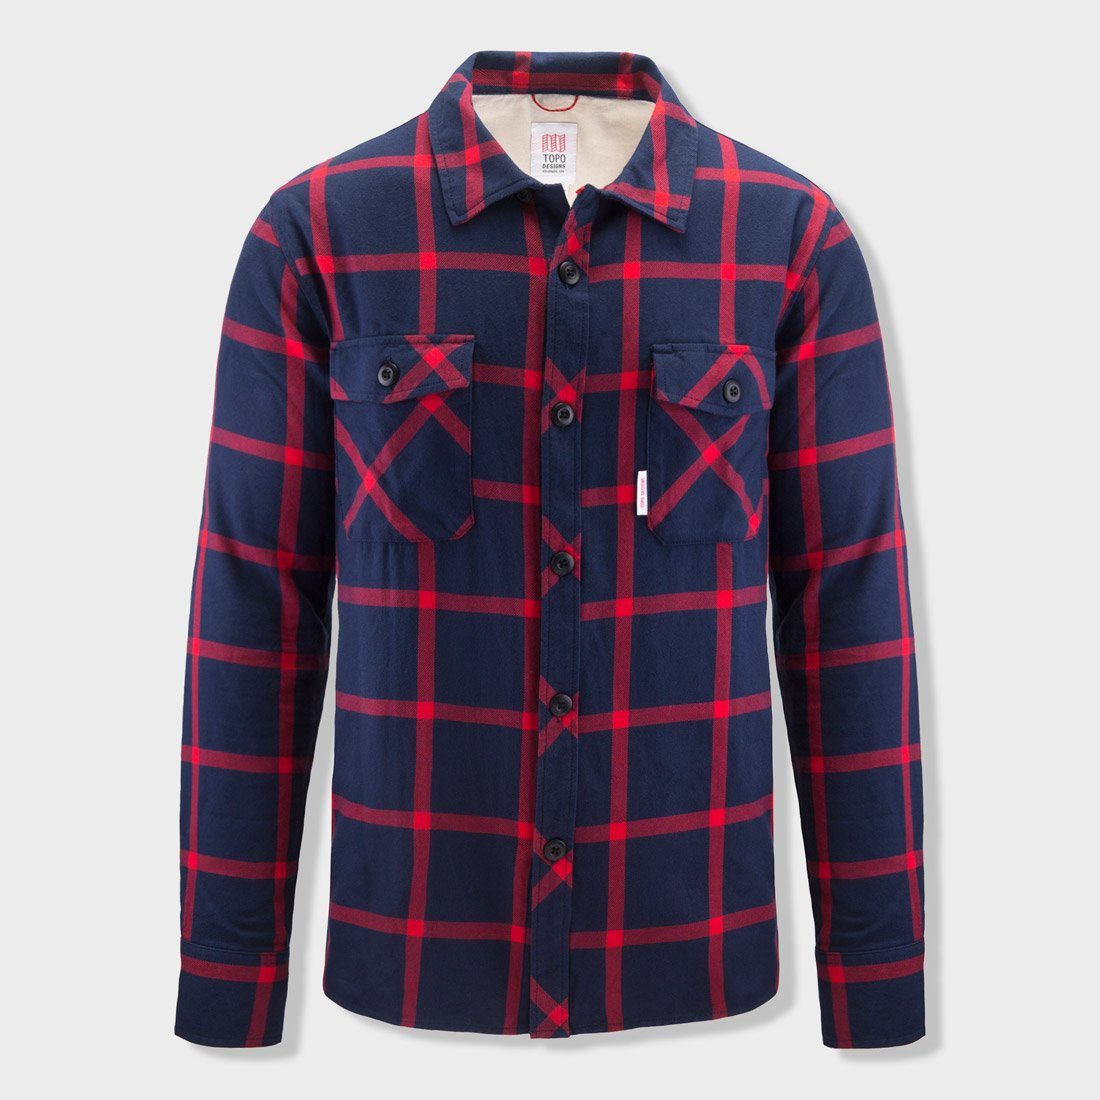 Topo Designs Field Shirt Plaid Navy Red